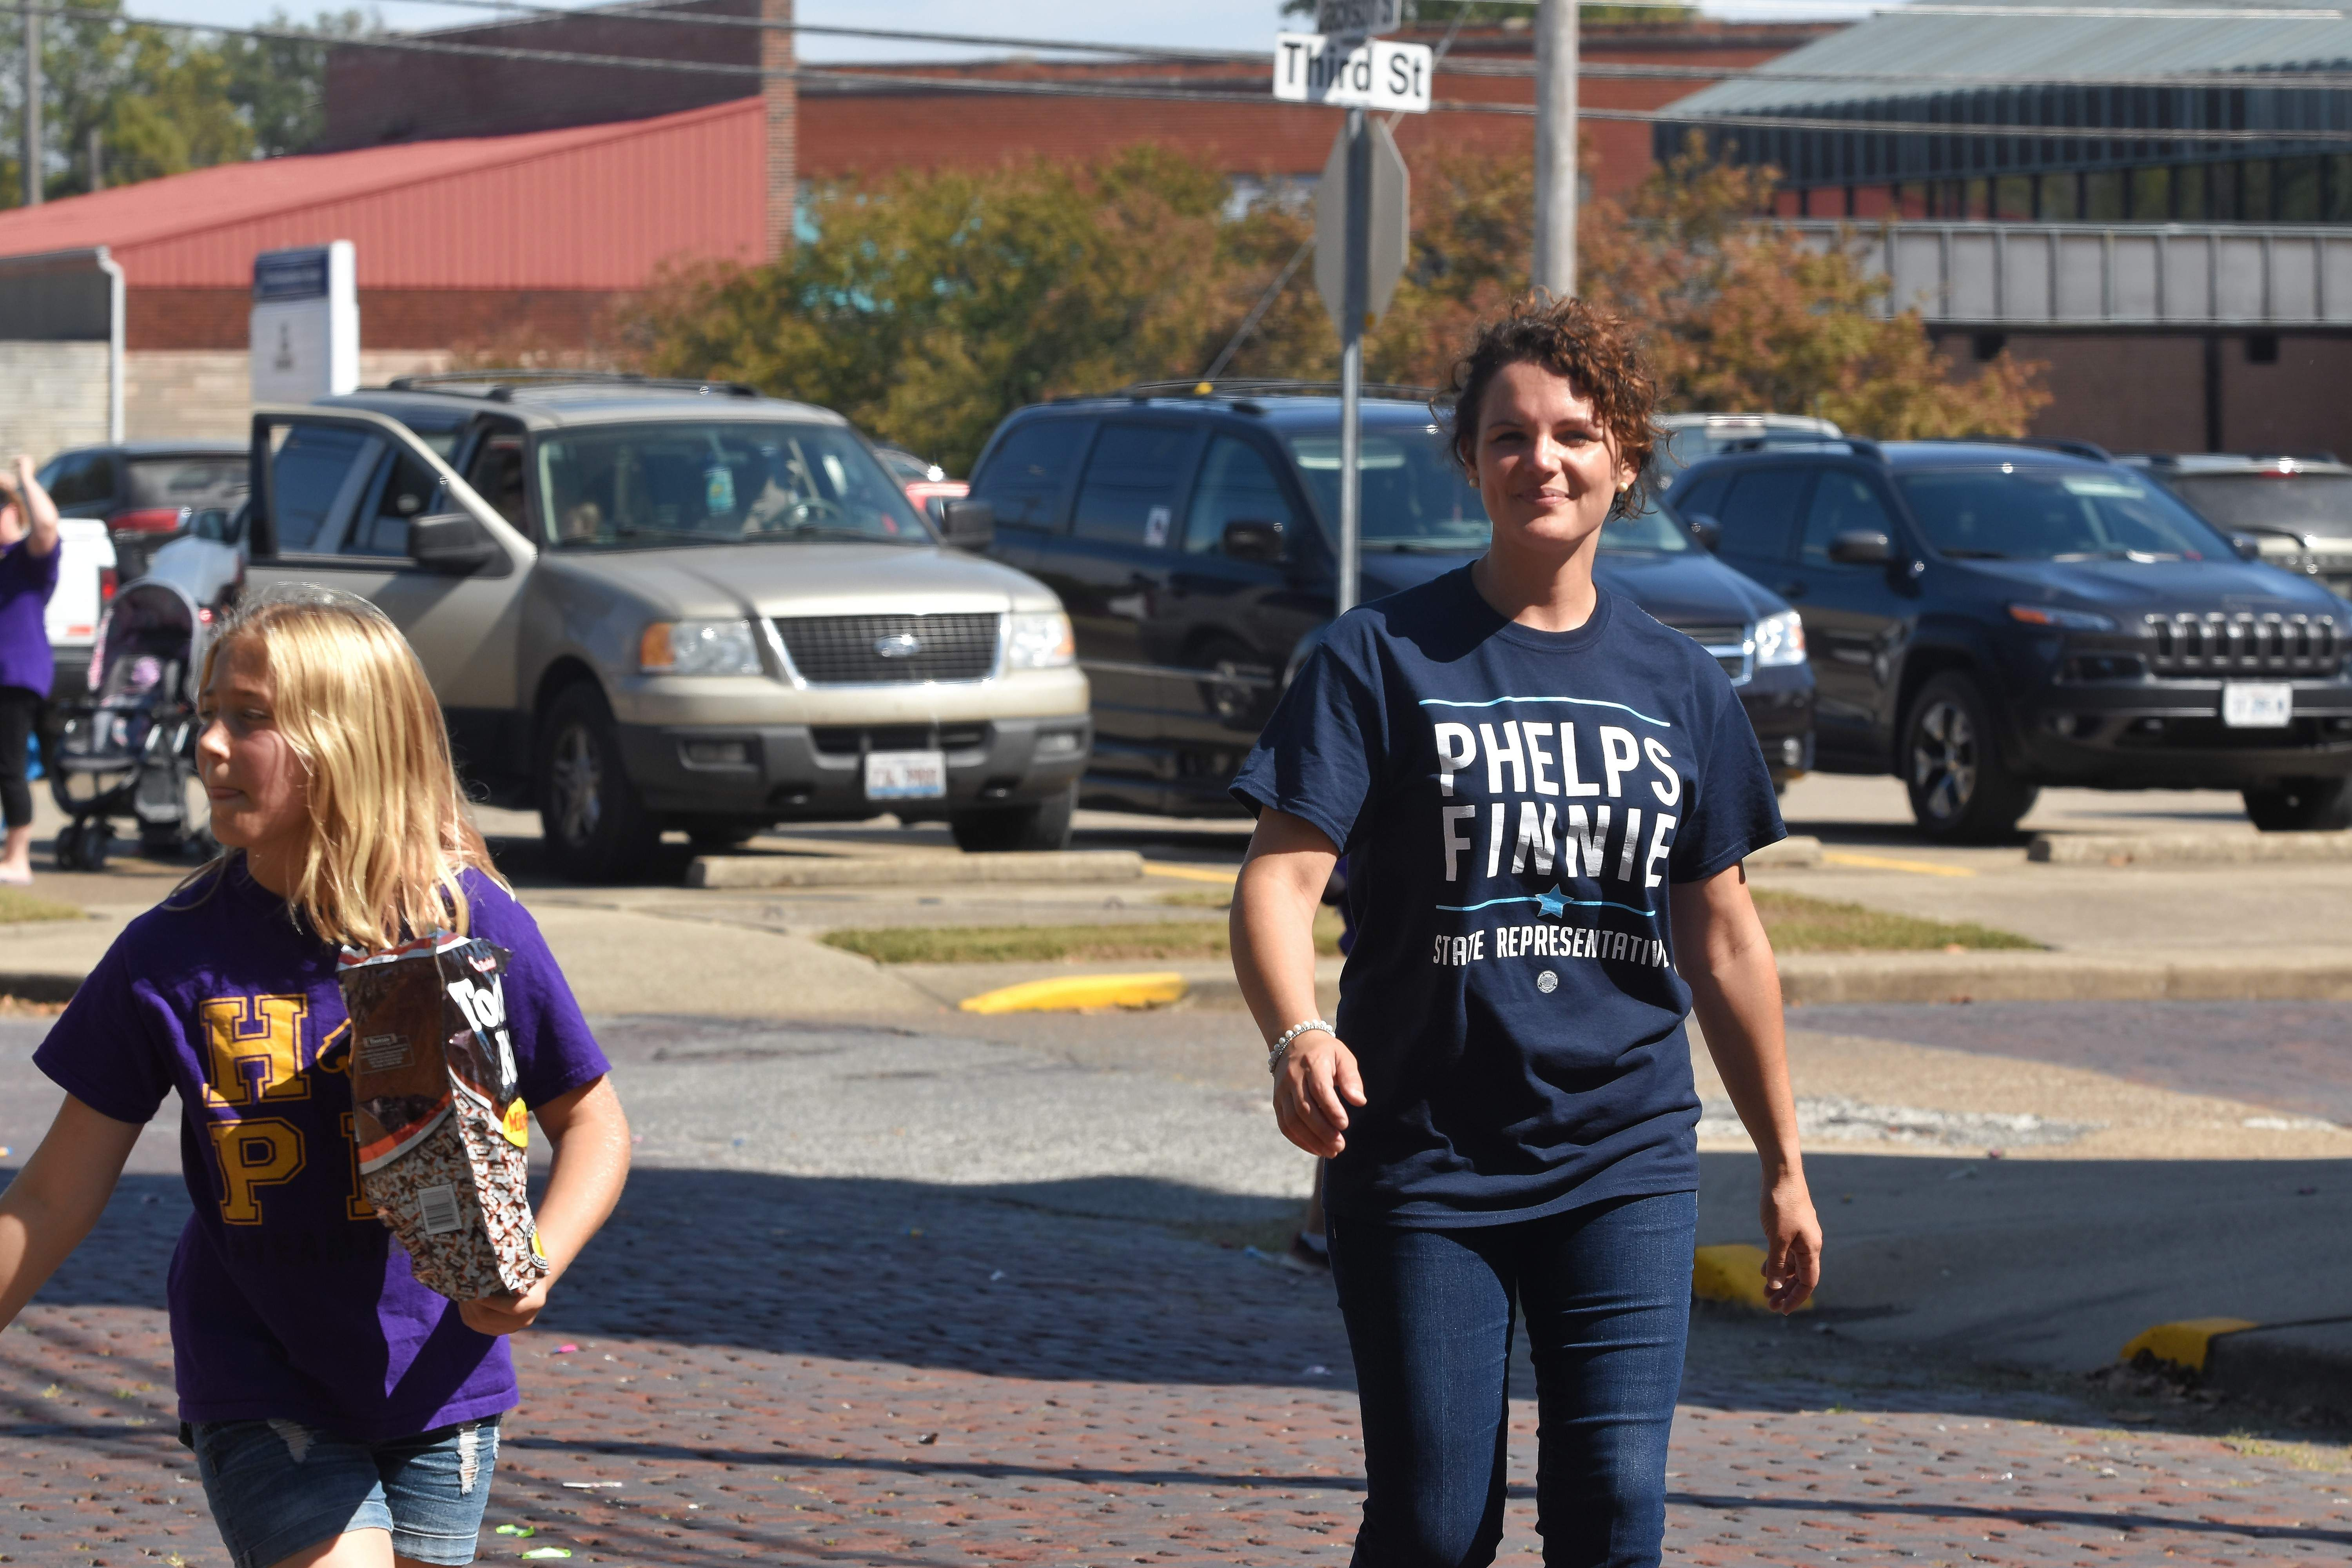 State Rep. Natalie Phelps-Finnie marches in the EHS homecoming parade.